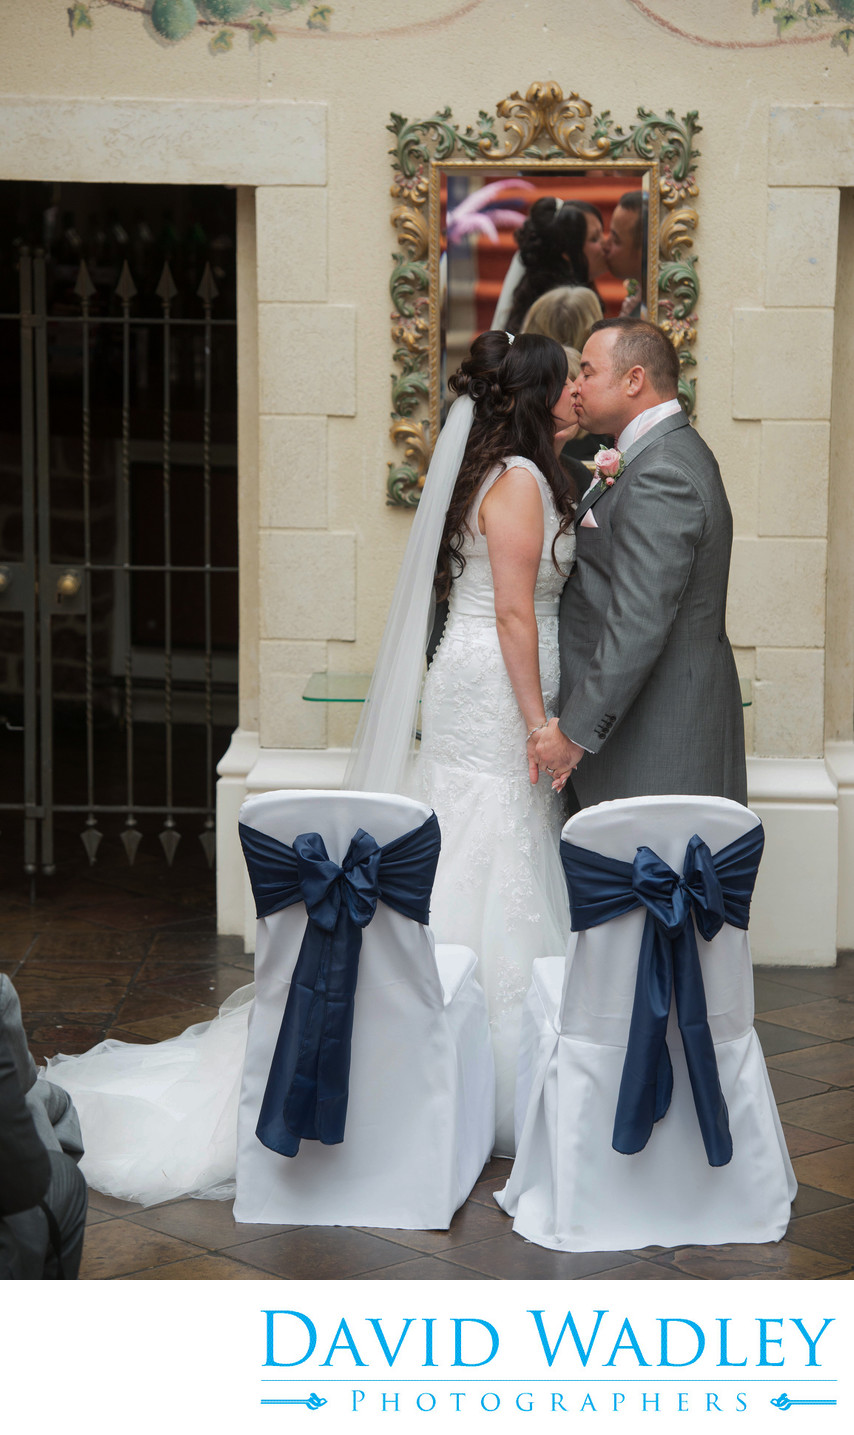 A kiss seals their wedding at Nailcote Hall.